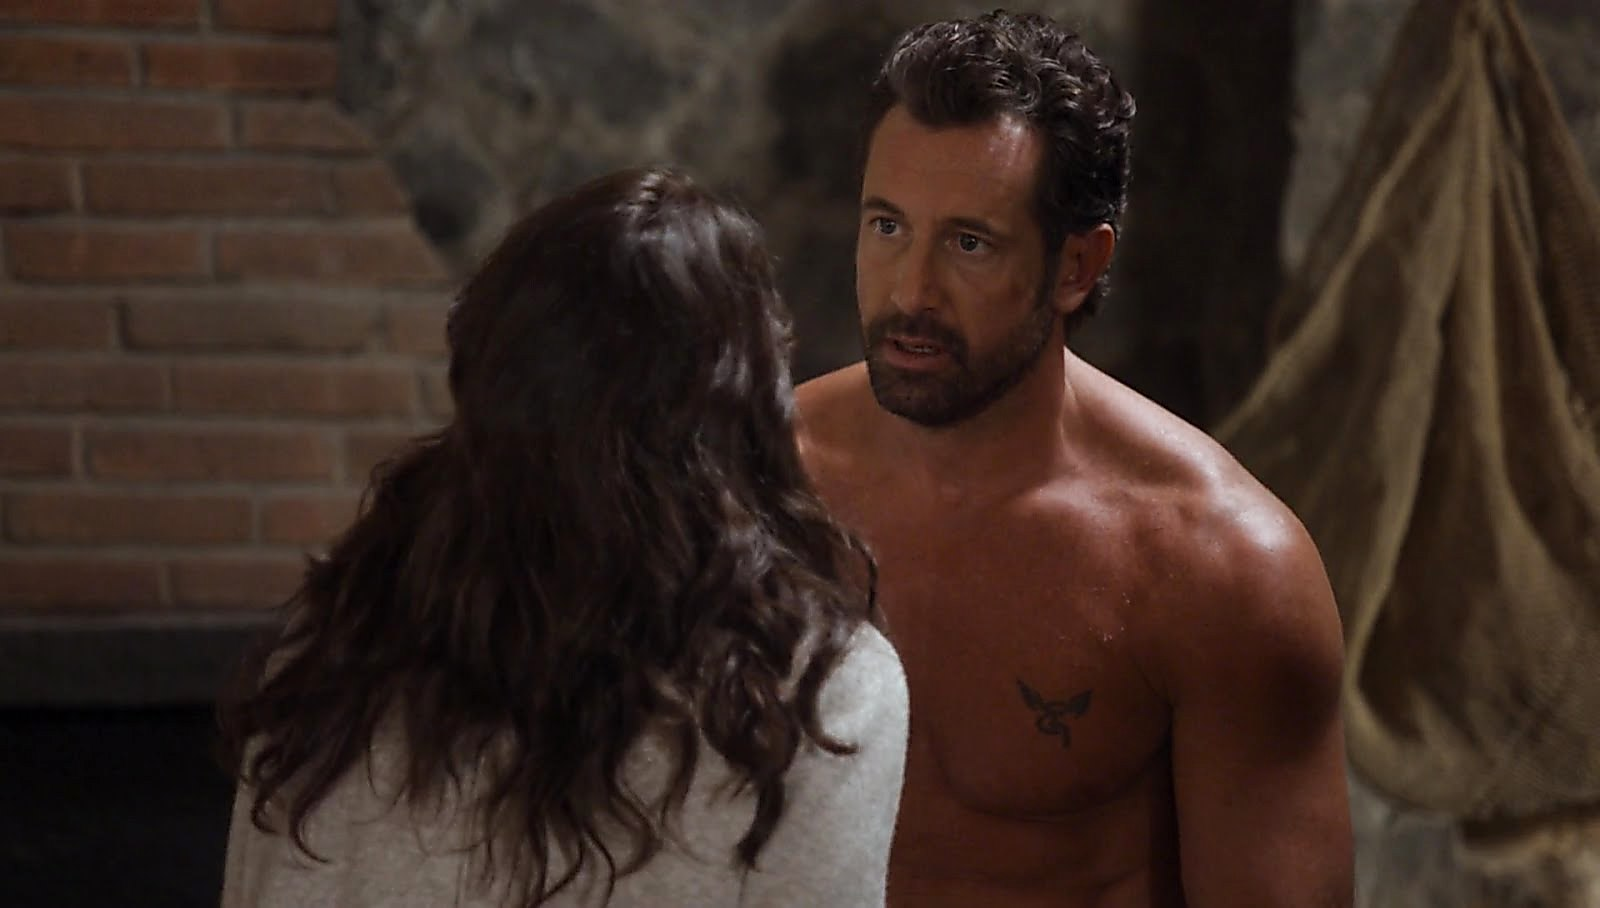 Gabriel Soto sexy shirtless scene December 1, 2017, 1pm